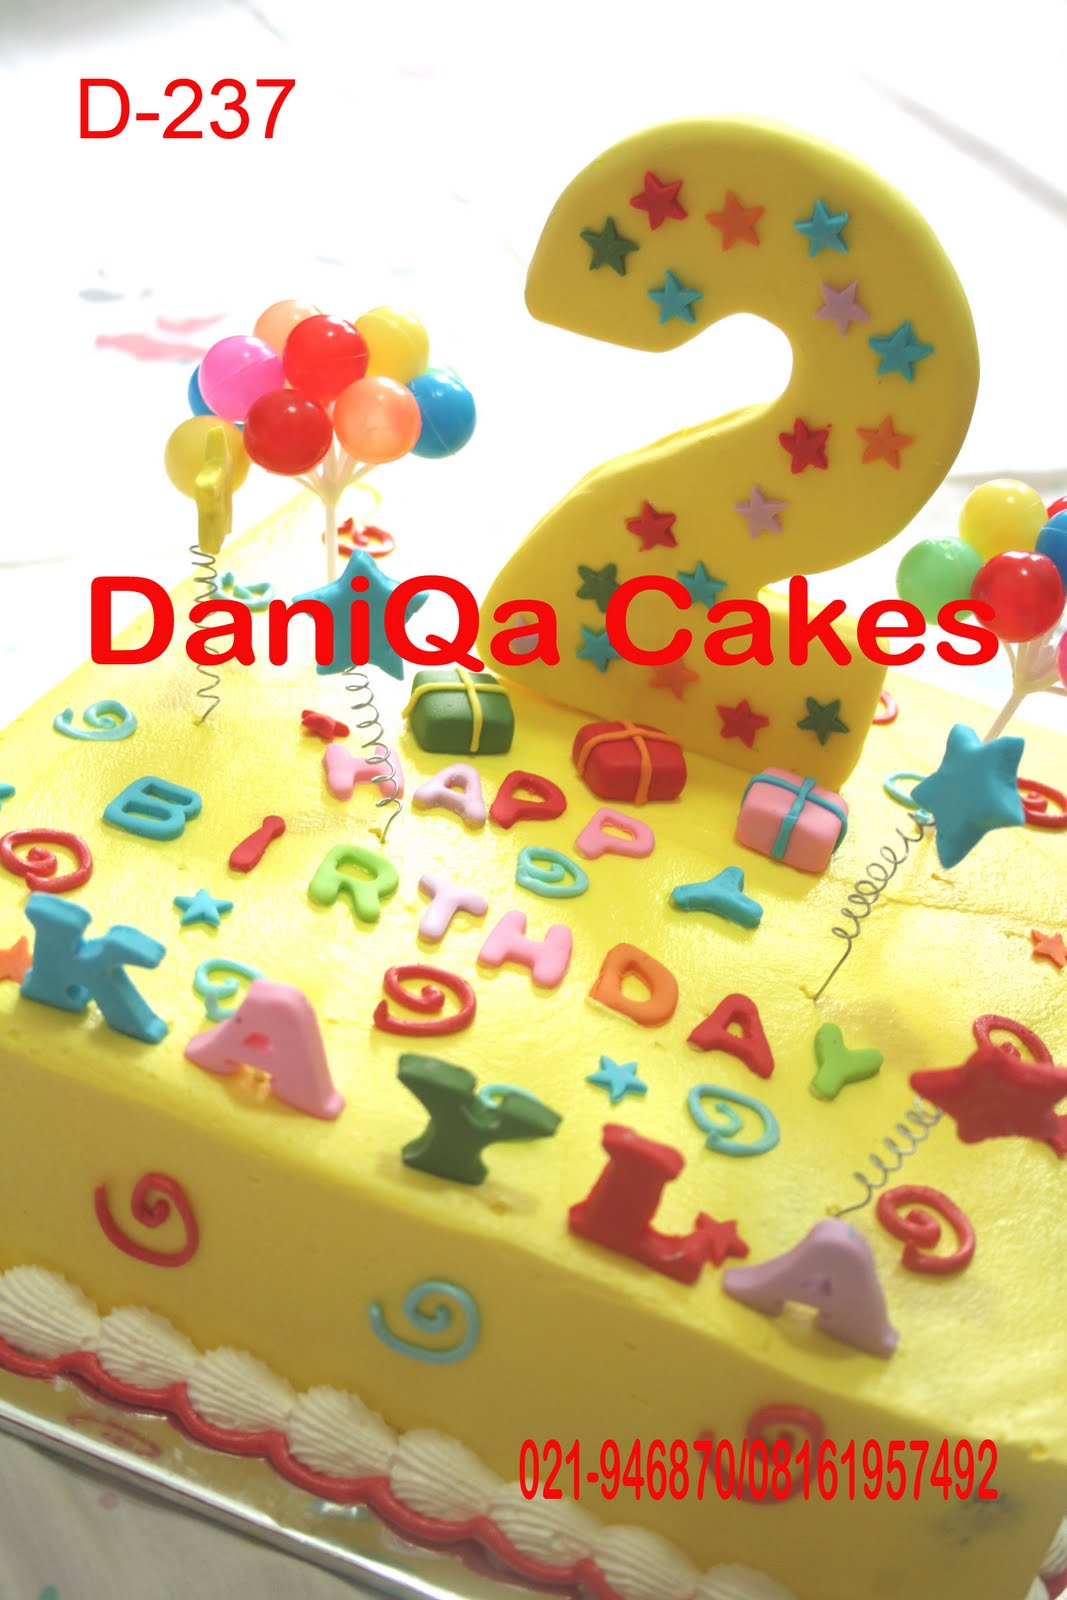 DaniQa Cakes & Traditional Snack